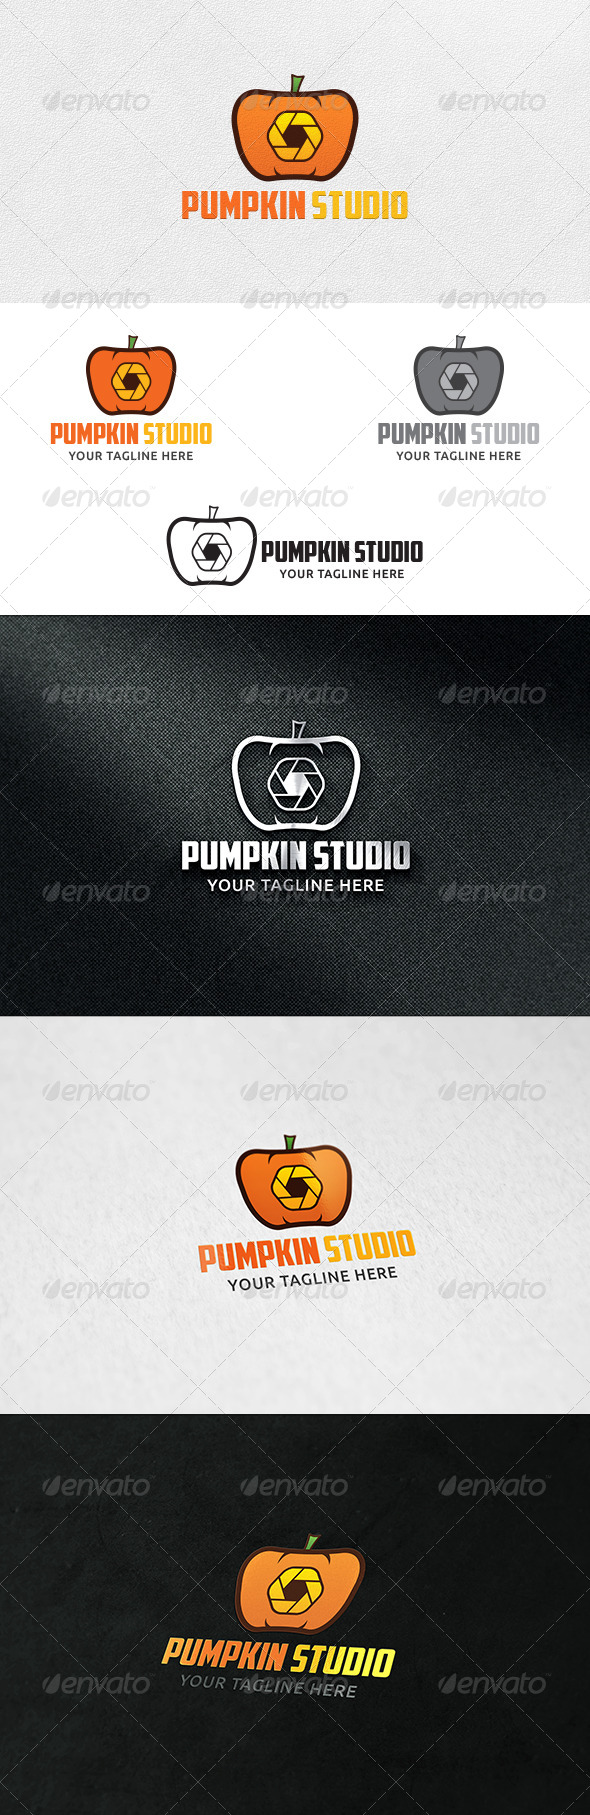 GraphicRiver Pumpkin Studio Logo Template 6964426